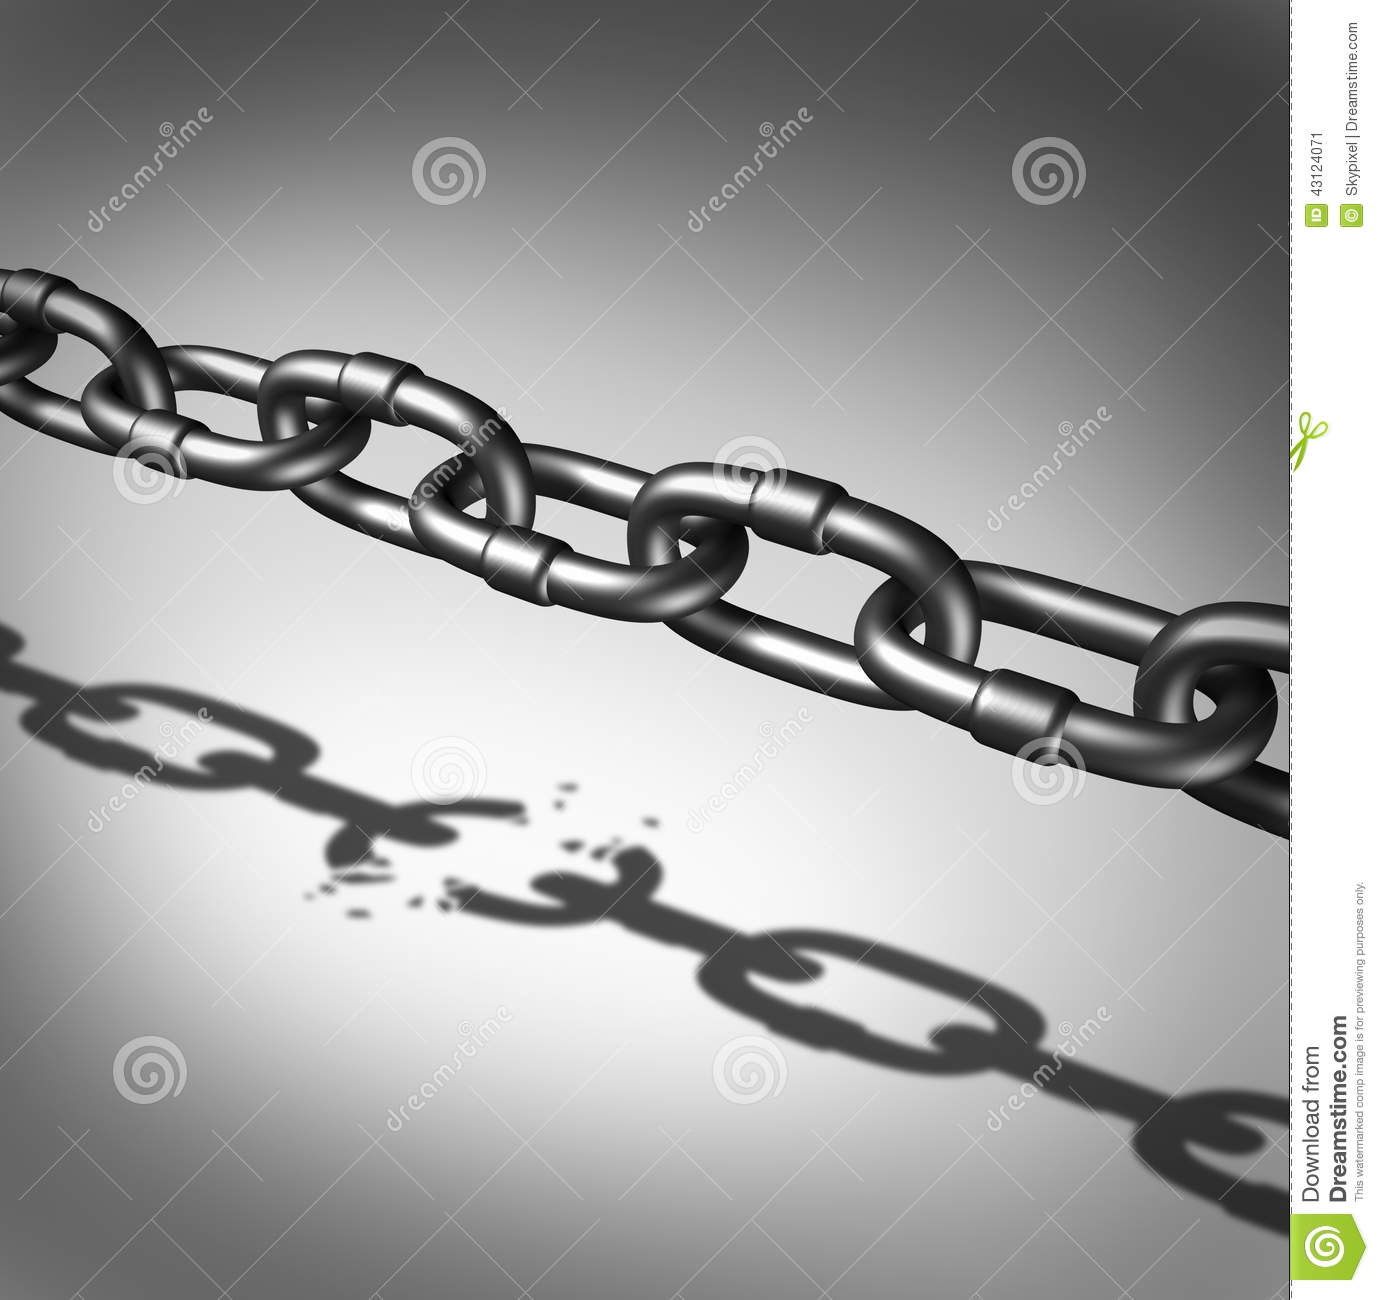 imprisonment puts freedom in chains Important quotes from chains helpful for writing essays and understanding the book.